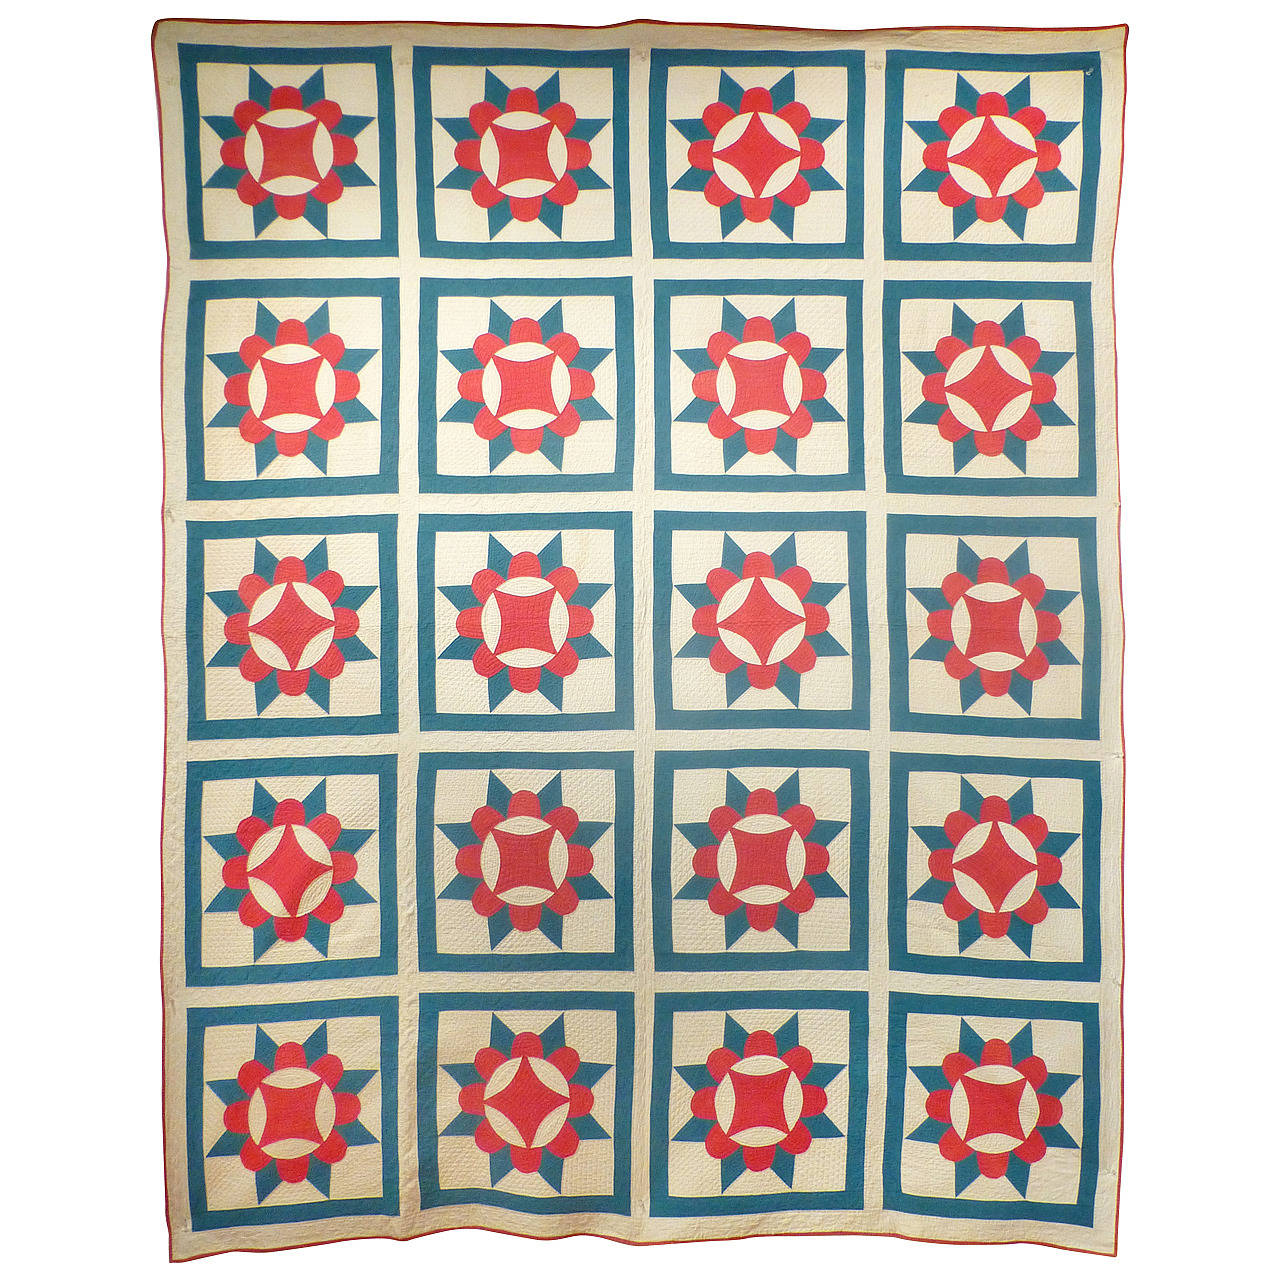 Antique Quilt Crown Of Thorns For Sale At 1stdibs